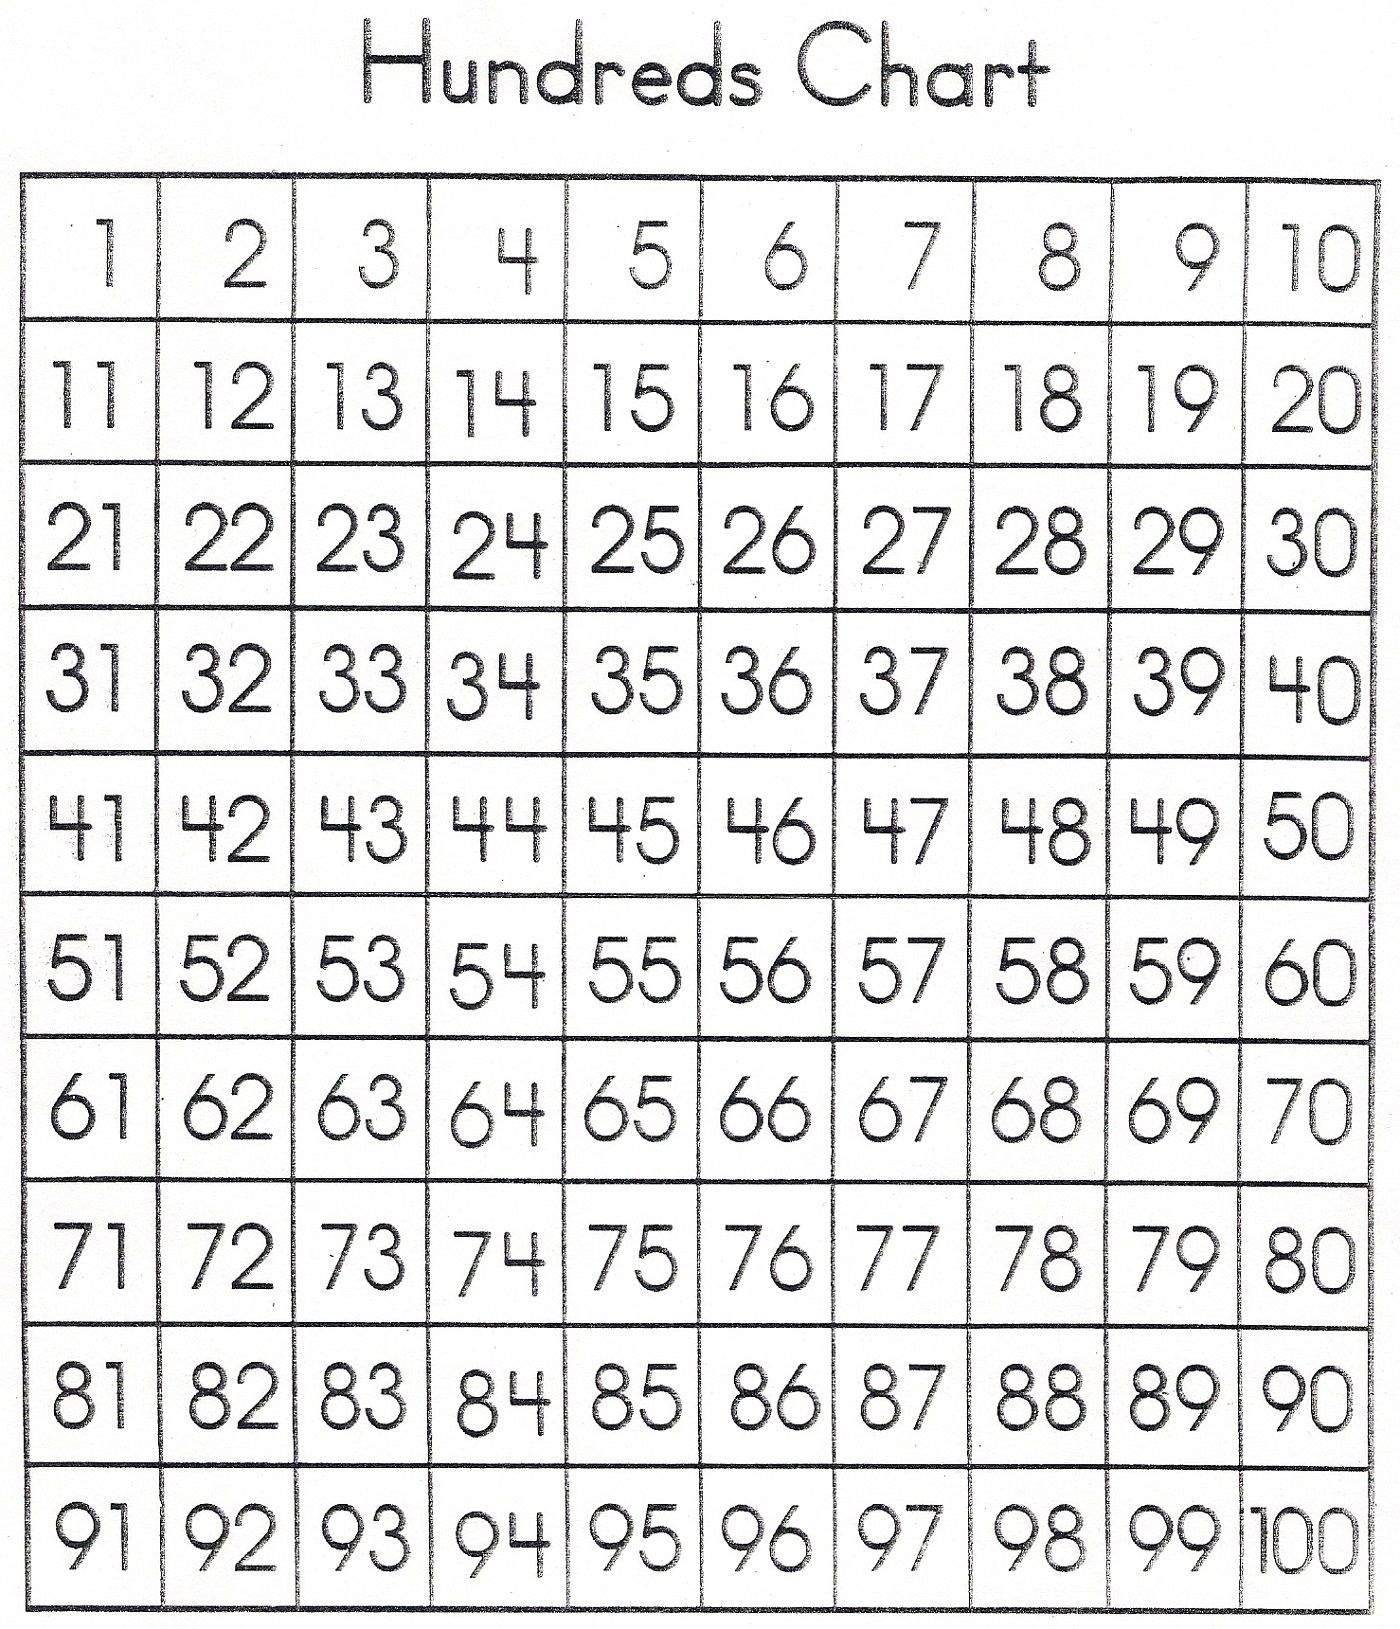 1 100 Number Chart Printable